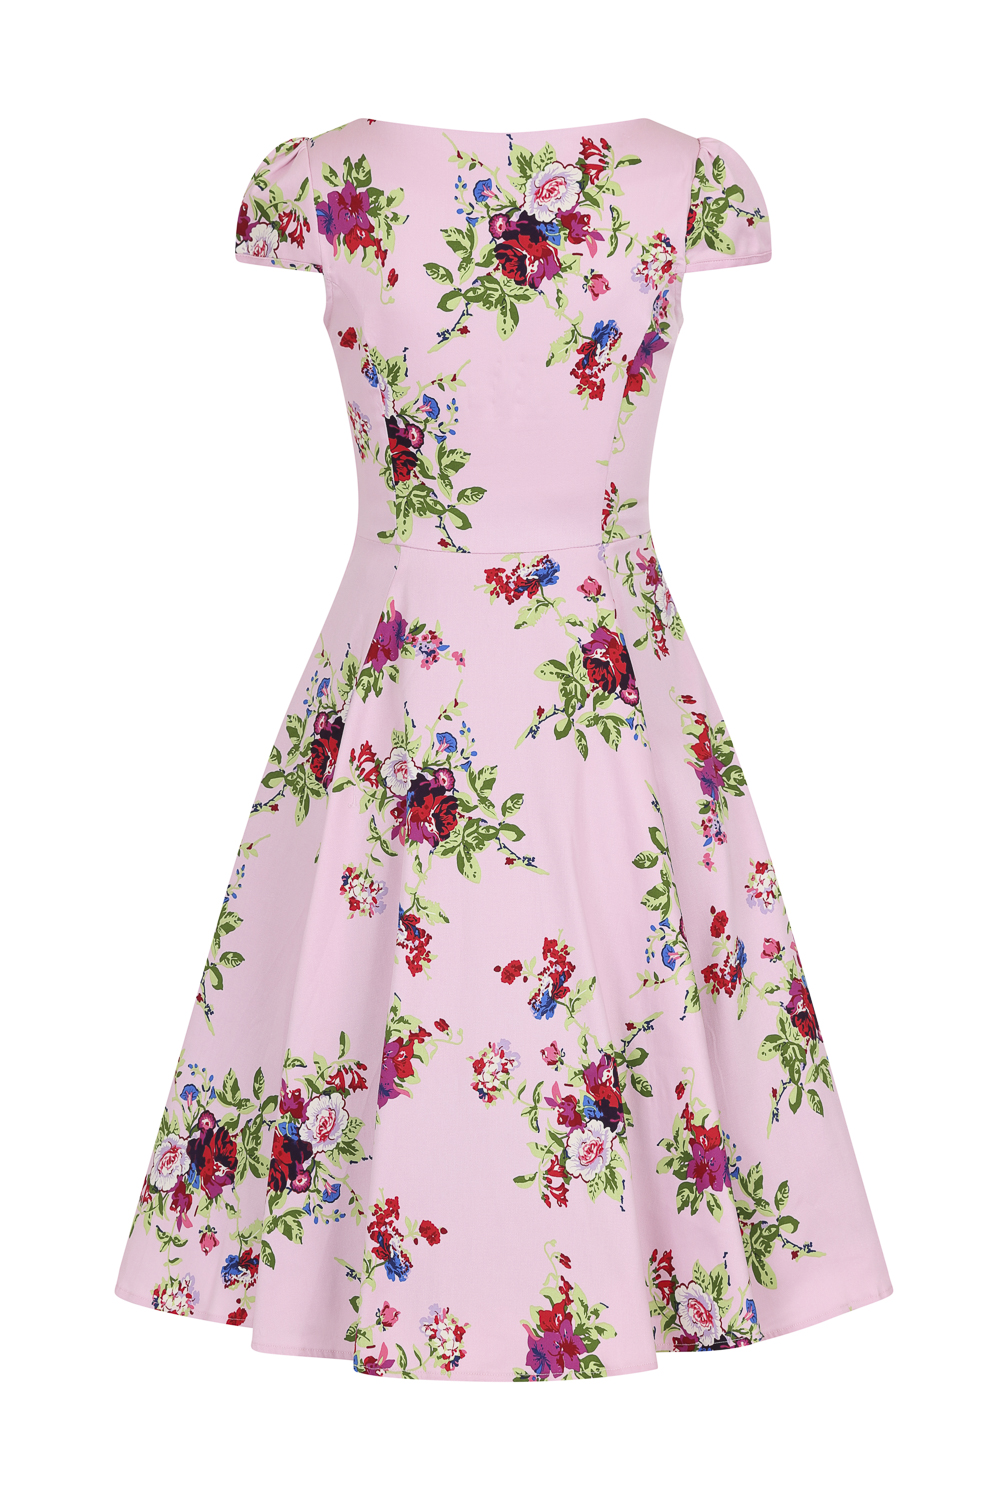 The Royal Ballet Tea Dress in Pink